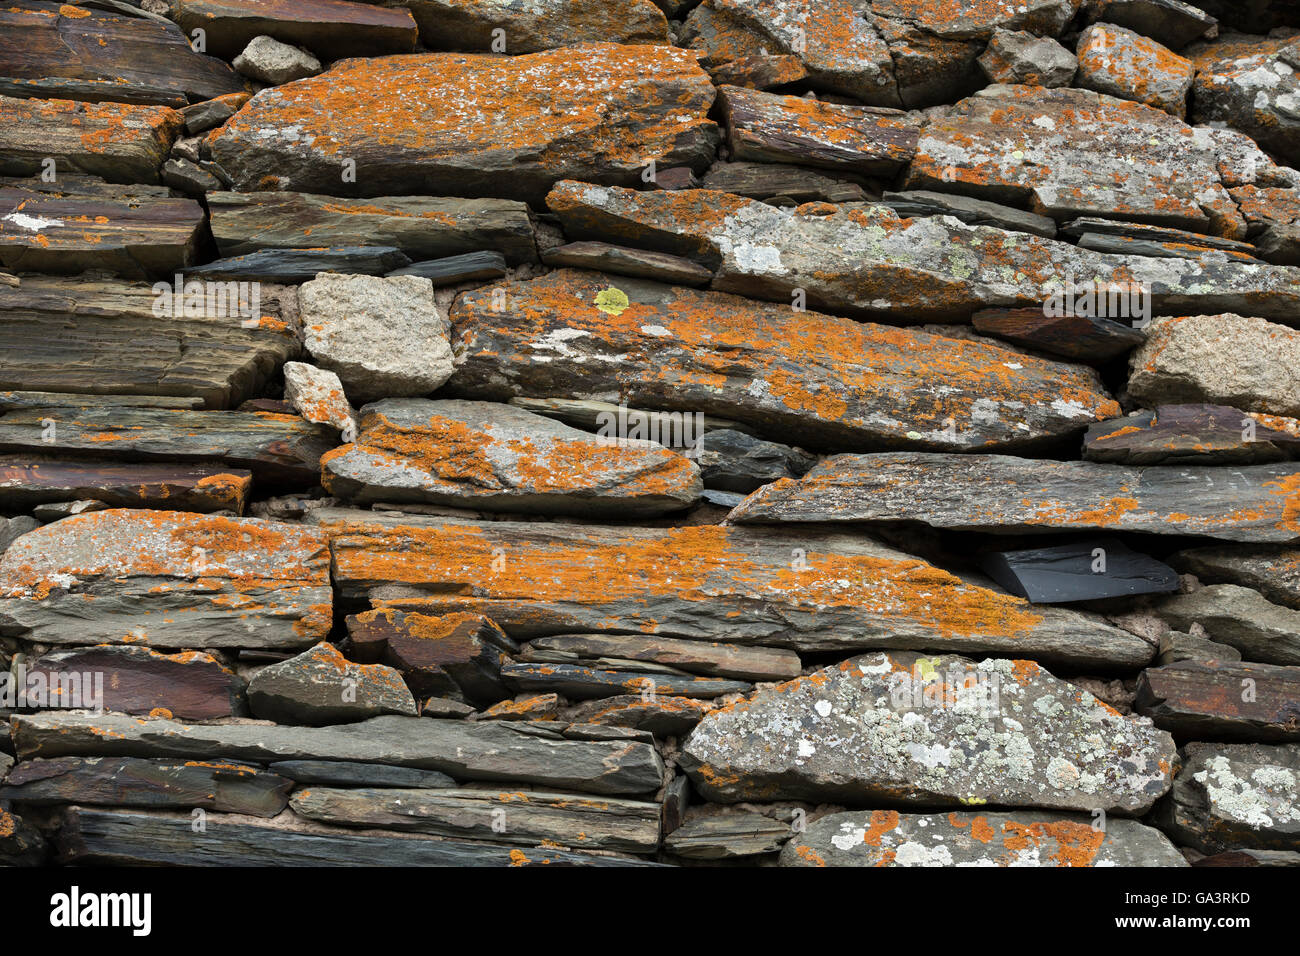 Wall composed of different pieces of basalt covered with lichens - Stock Image